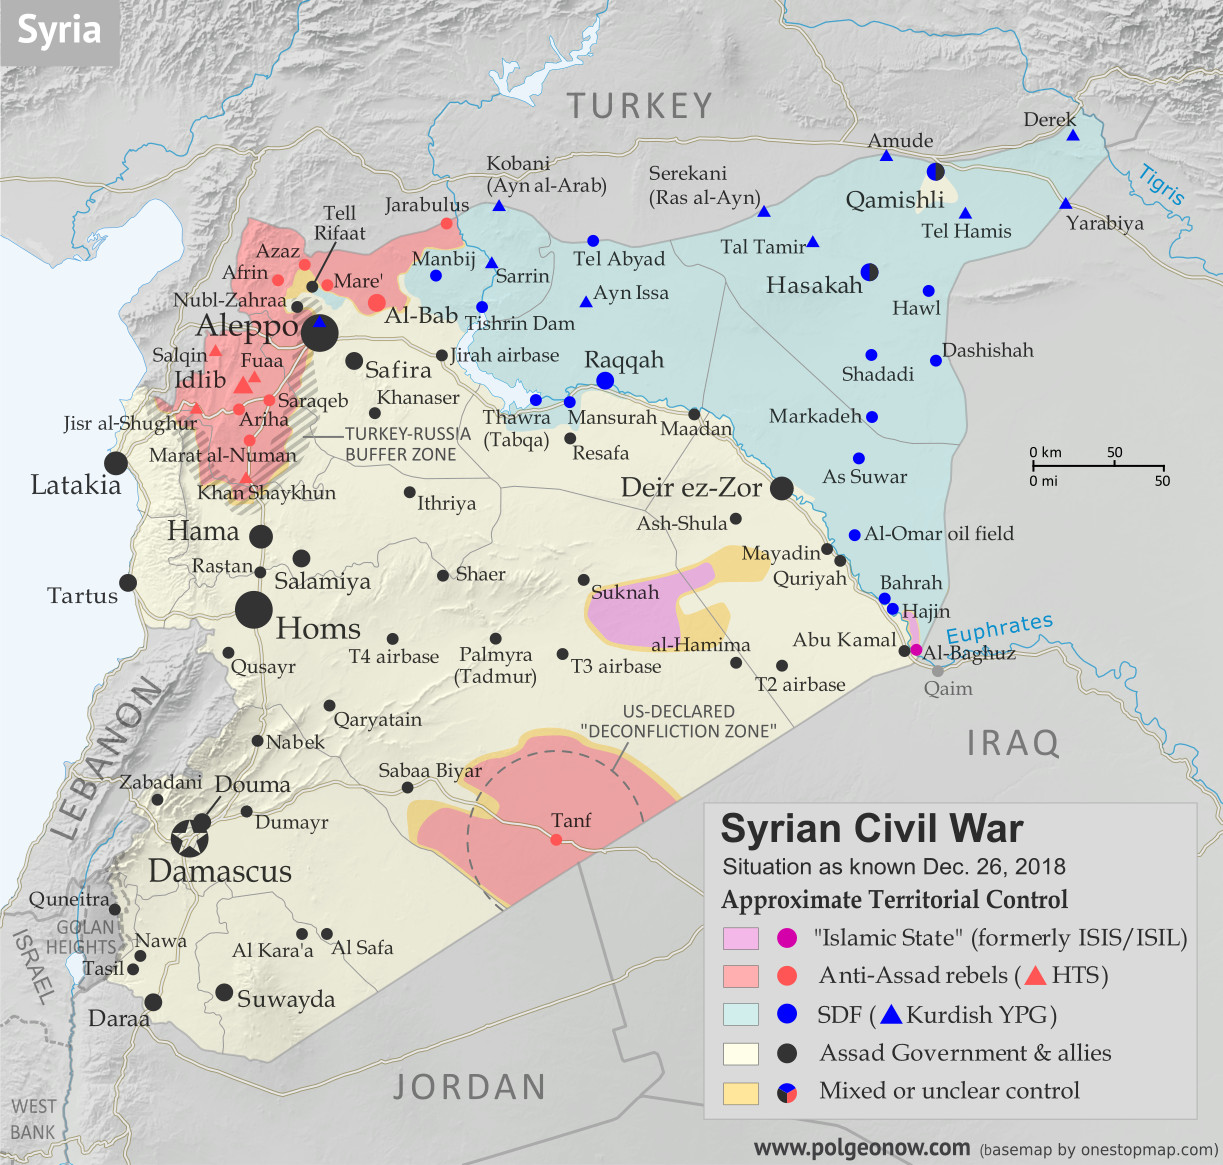 Map of Syrian Civil War (Syria control map): Territorial control in Syria in December 2018, just before the US troop withdrawal (Free Syrian Army rebels, Kurdish YPG, Syrian Democratic Forces (SDF), Hayat Tahrir al-Sham (HTS / Al-Nusra Front), Islamic State (ISIS/ISIL), and others). Includes US deconfliction zone and Turkey-Russia demilitarized buffer zone, plus recent locations of conflict and territorial control changes, such as Hajin, Al Safa, Baghuz, and more. Colorblind accessible.